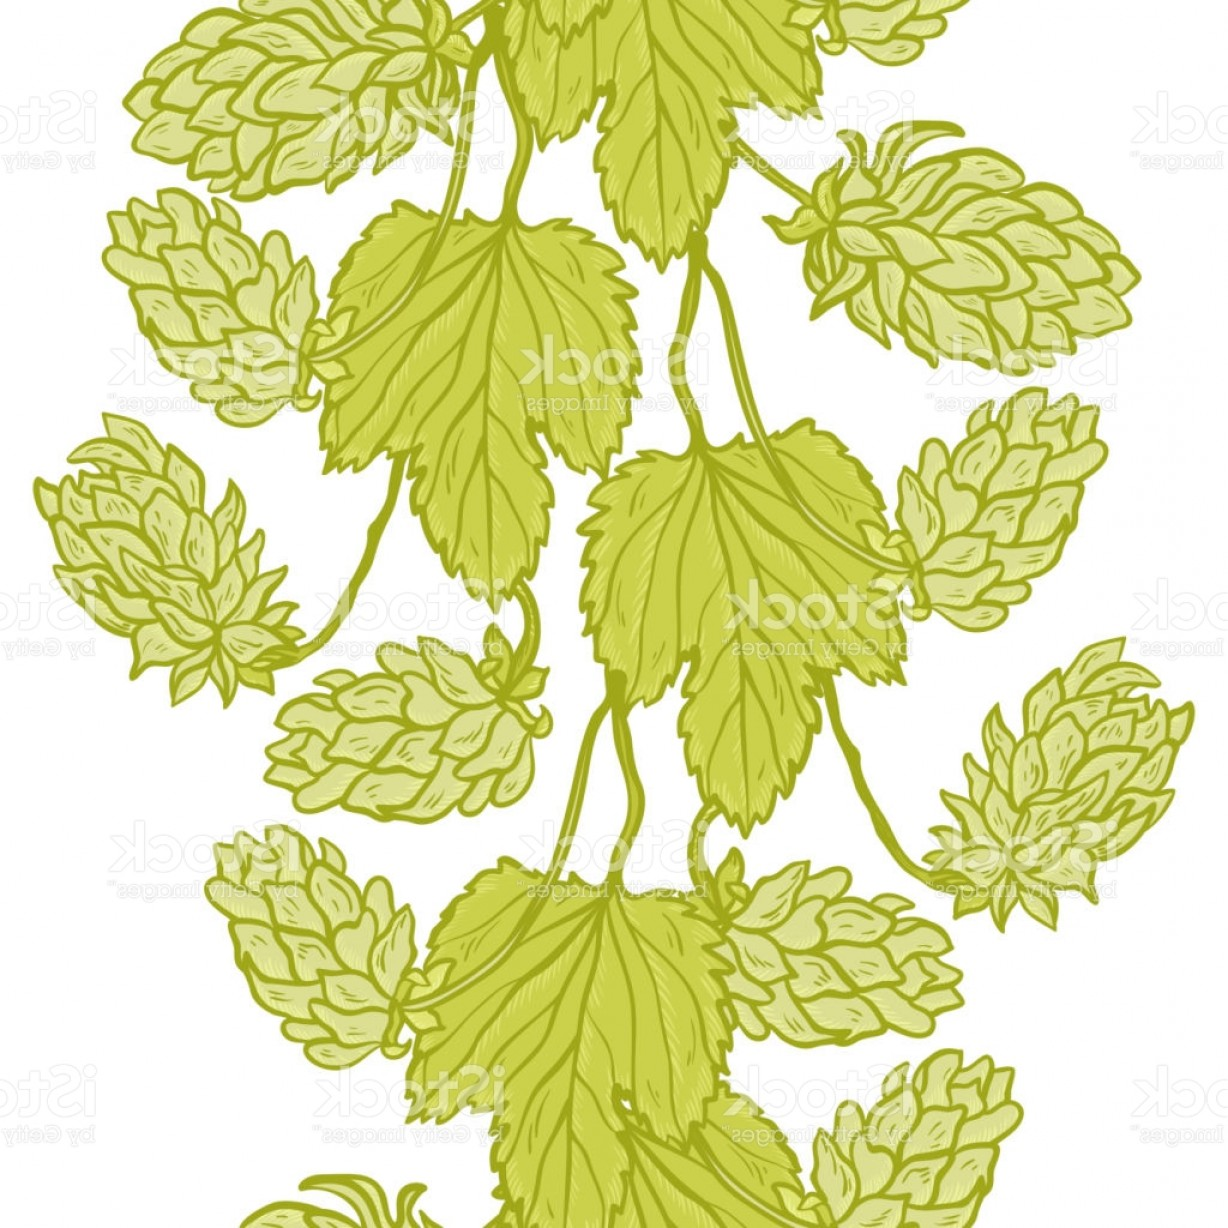 Beer Hops Vector: Vector Vertical Seamless Border With Beer Hops Common Hop Or Humulus Lupulus Branch Gm